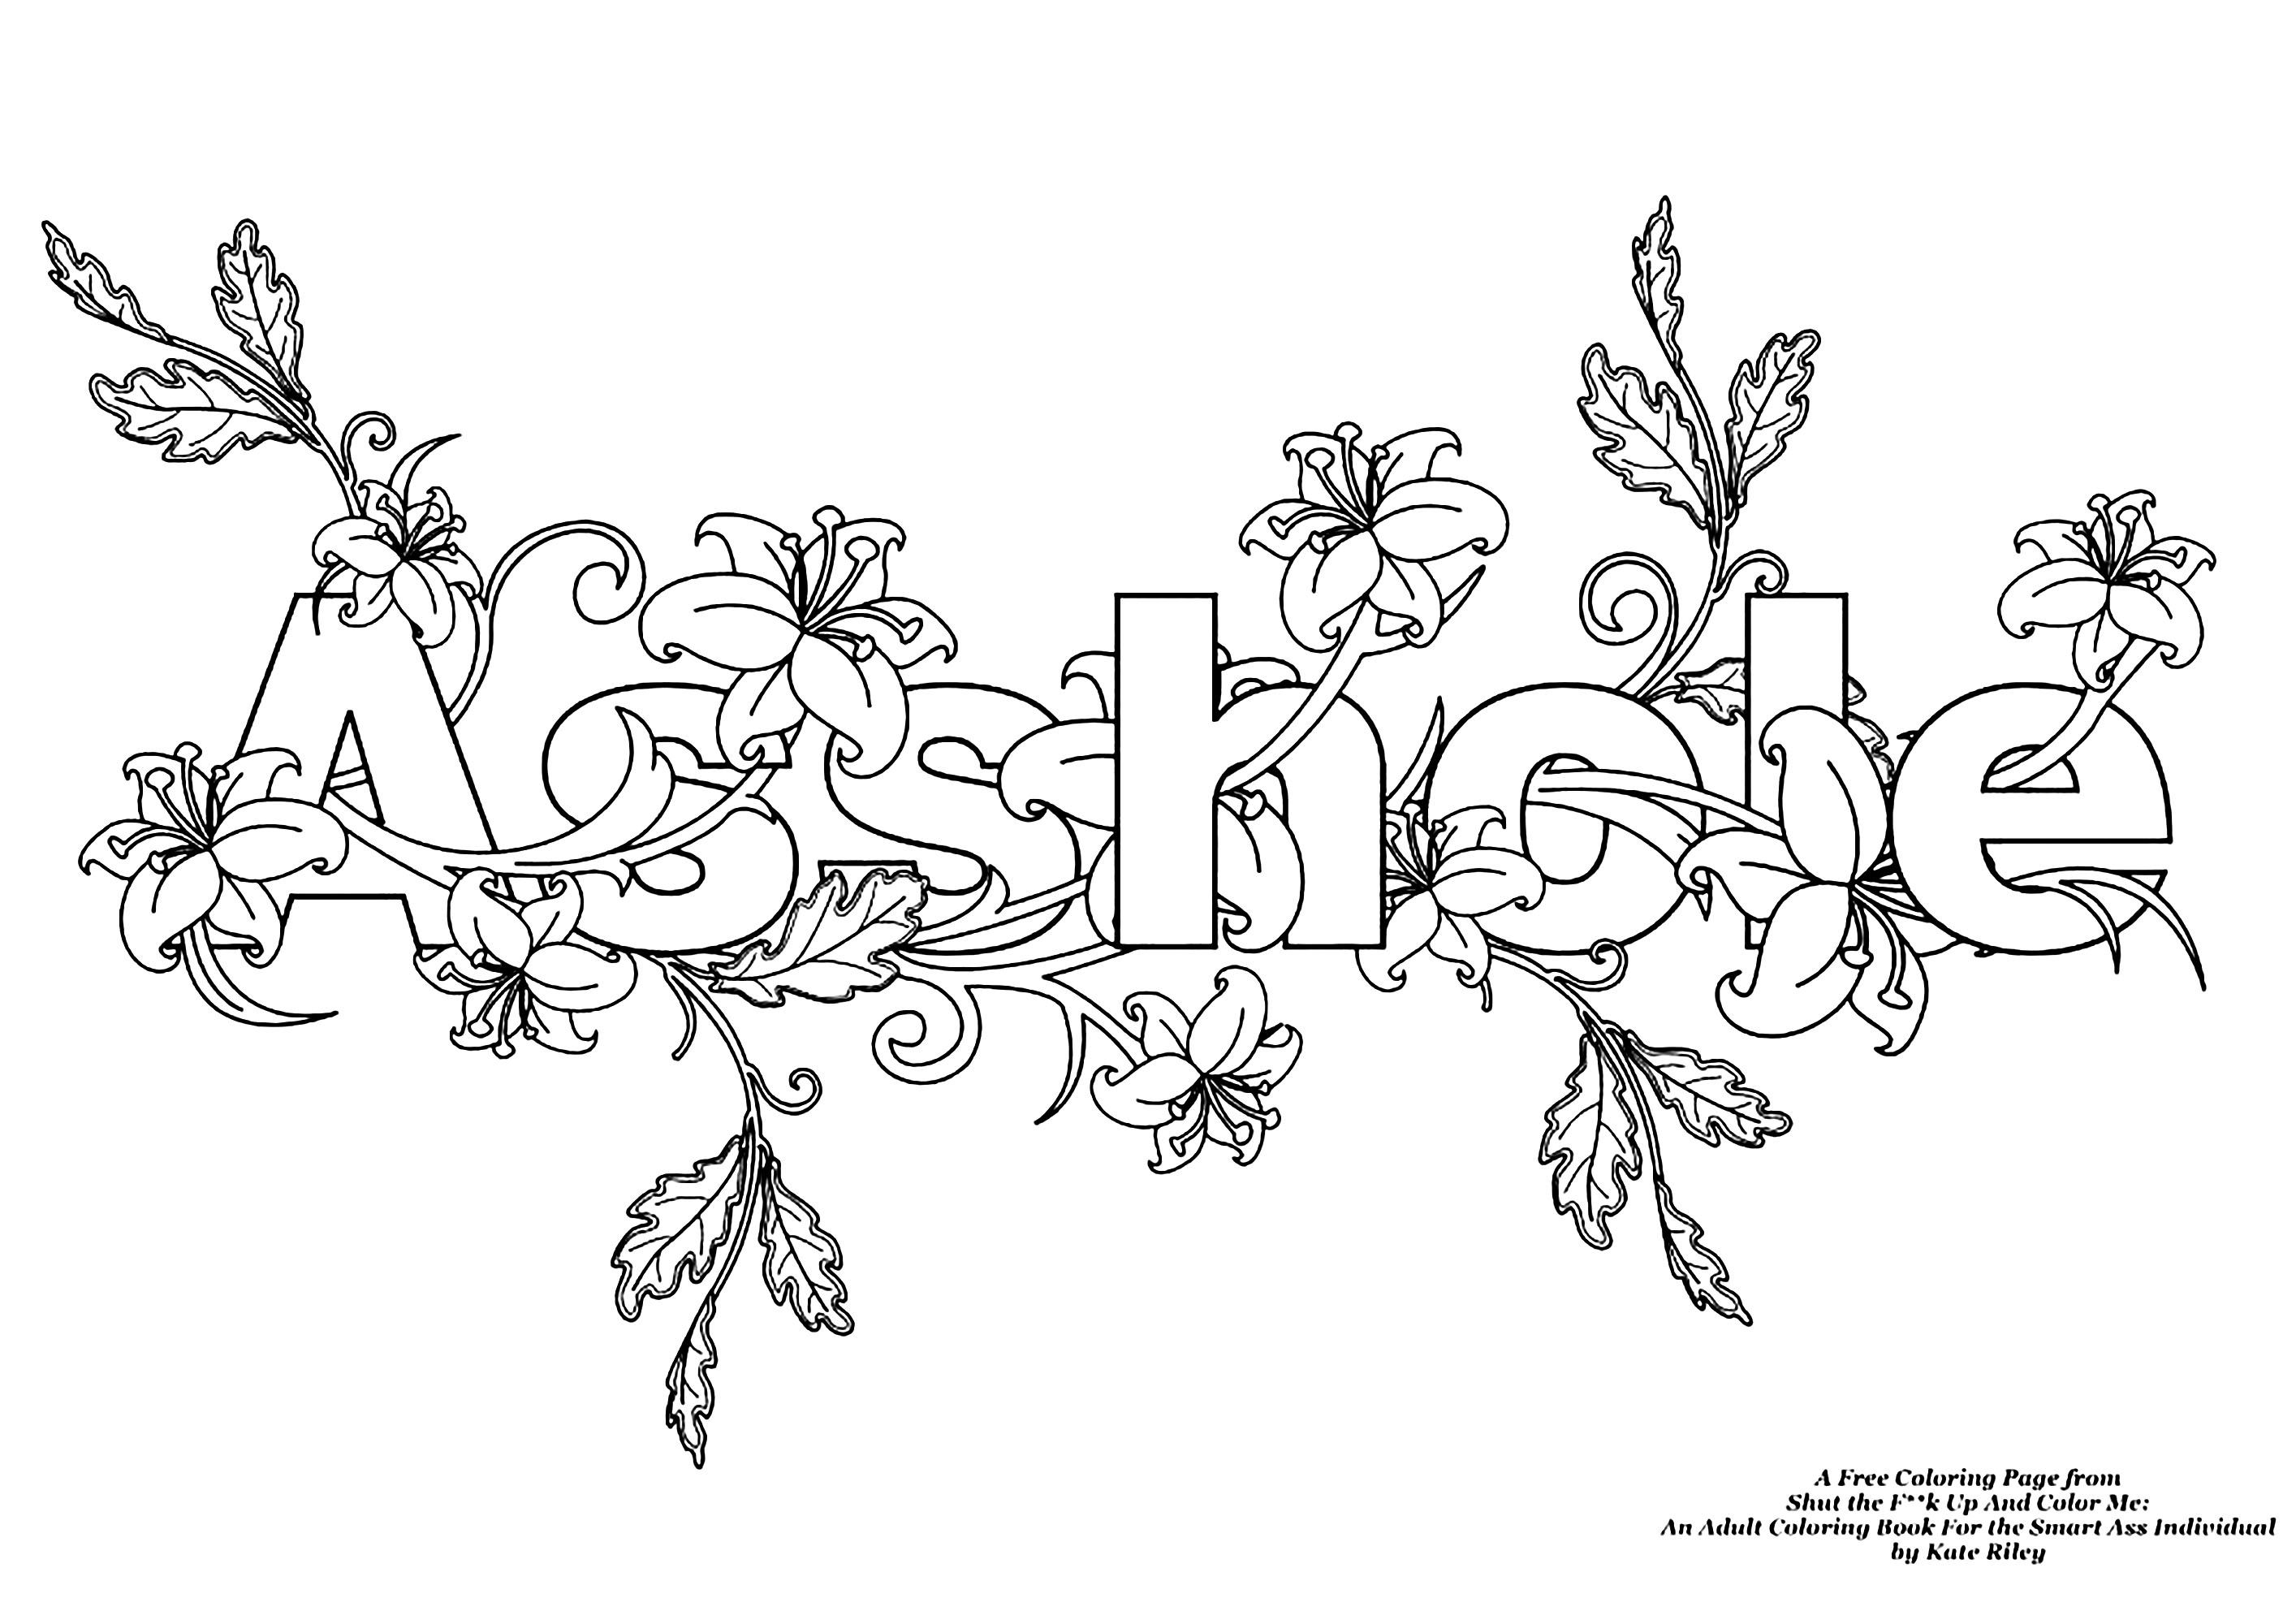 coloring books for adults bad words assholeswear word coloring page swear word adult coloring bad for adults words books